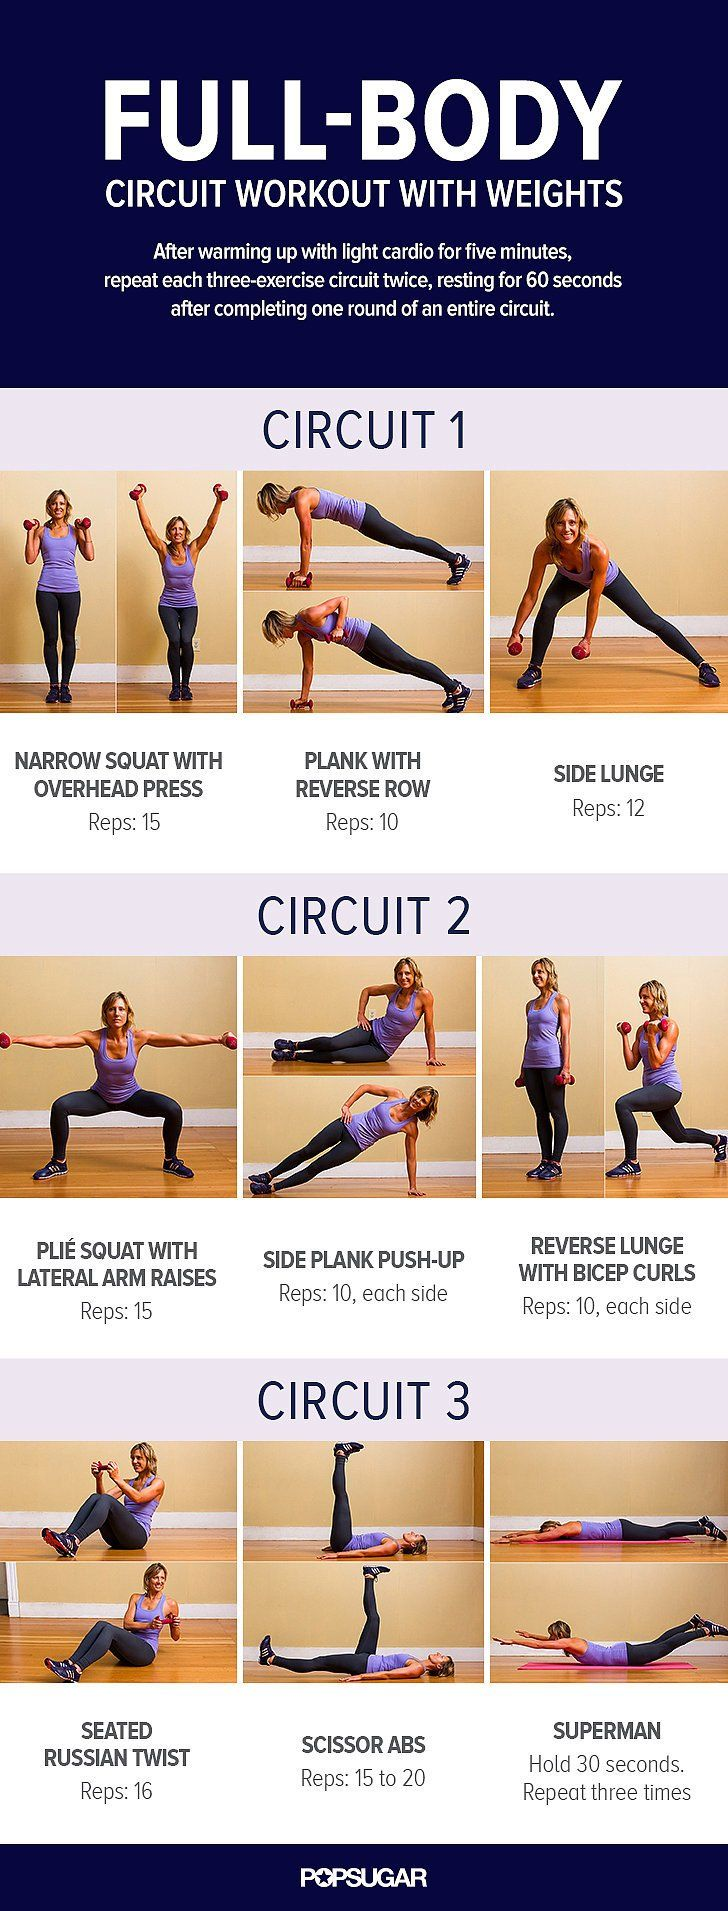 Fullbody circuit workout with weights tone up poster and workout